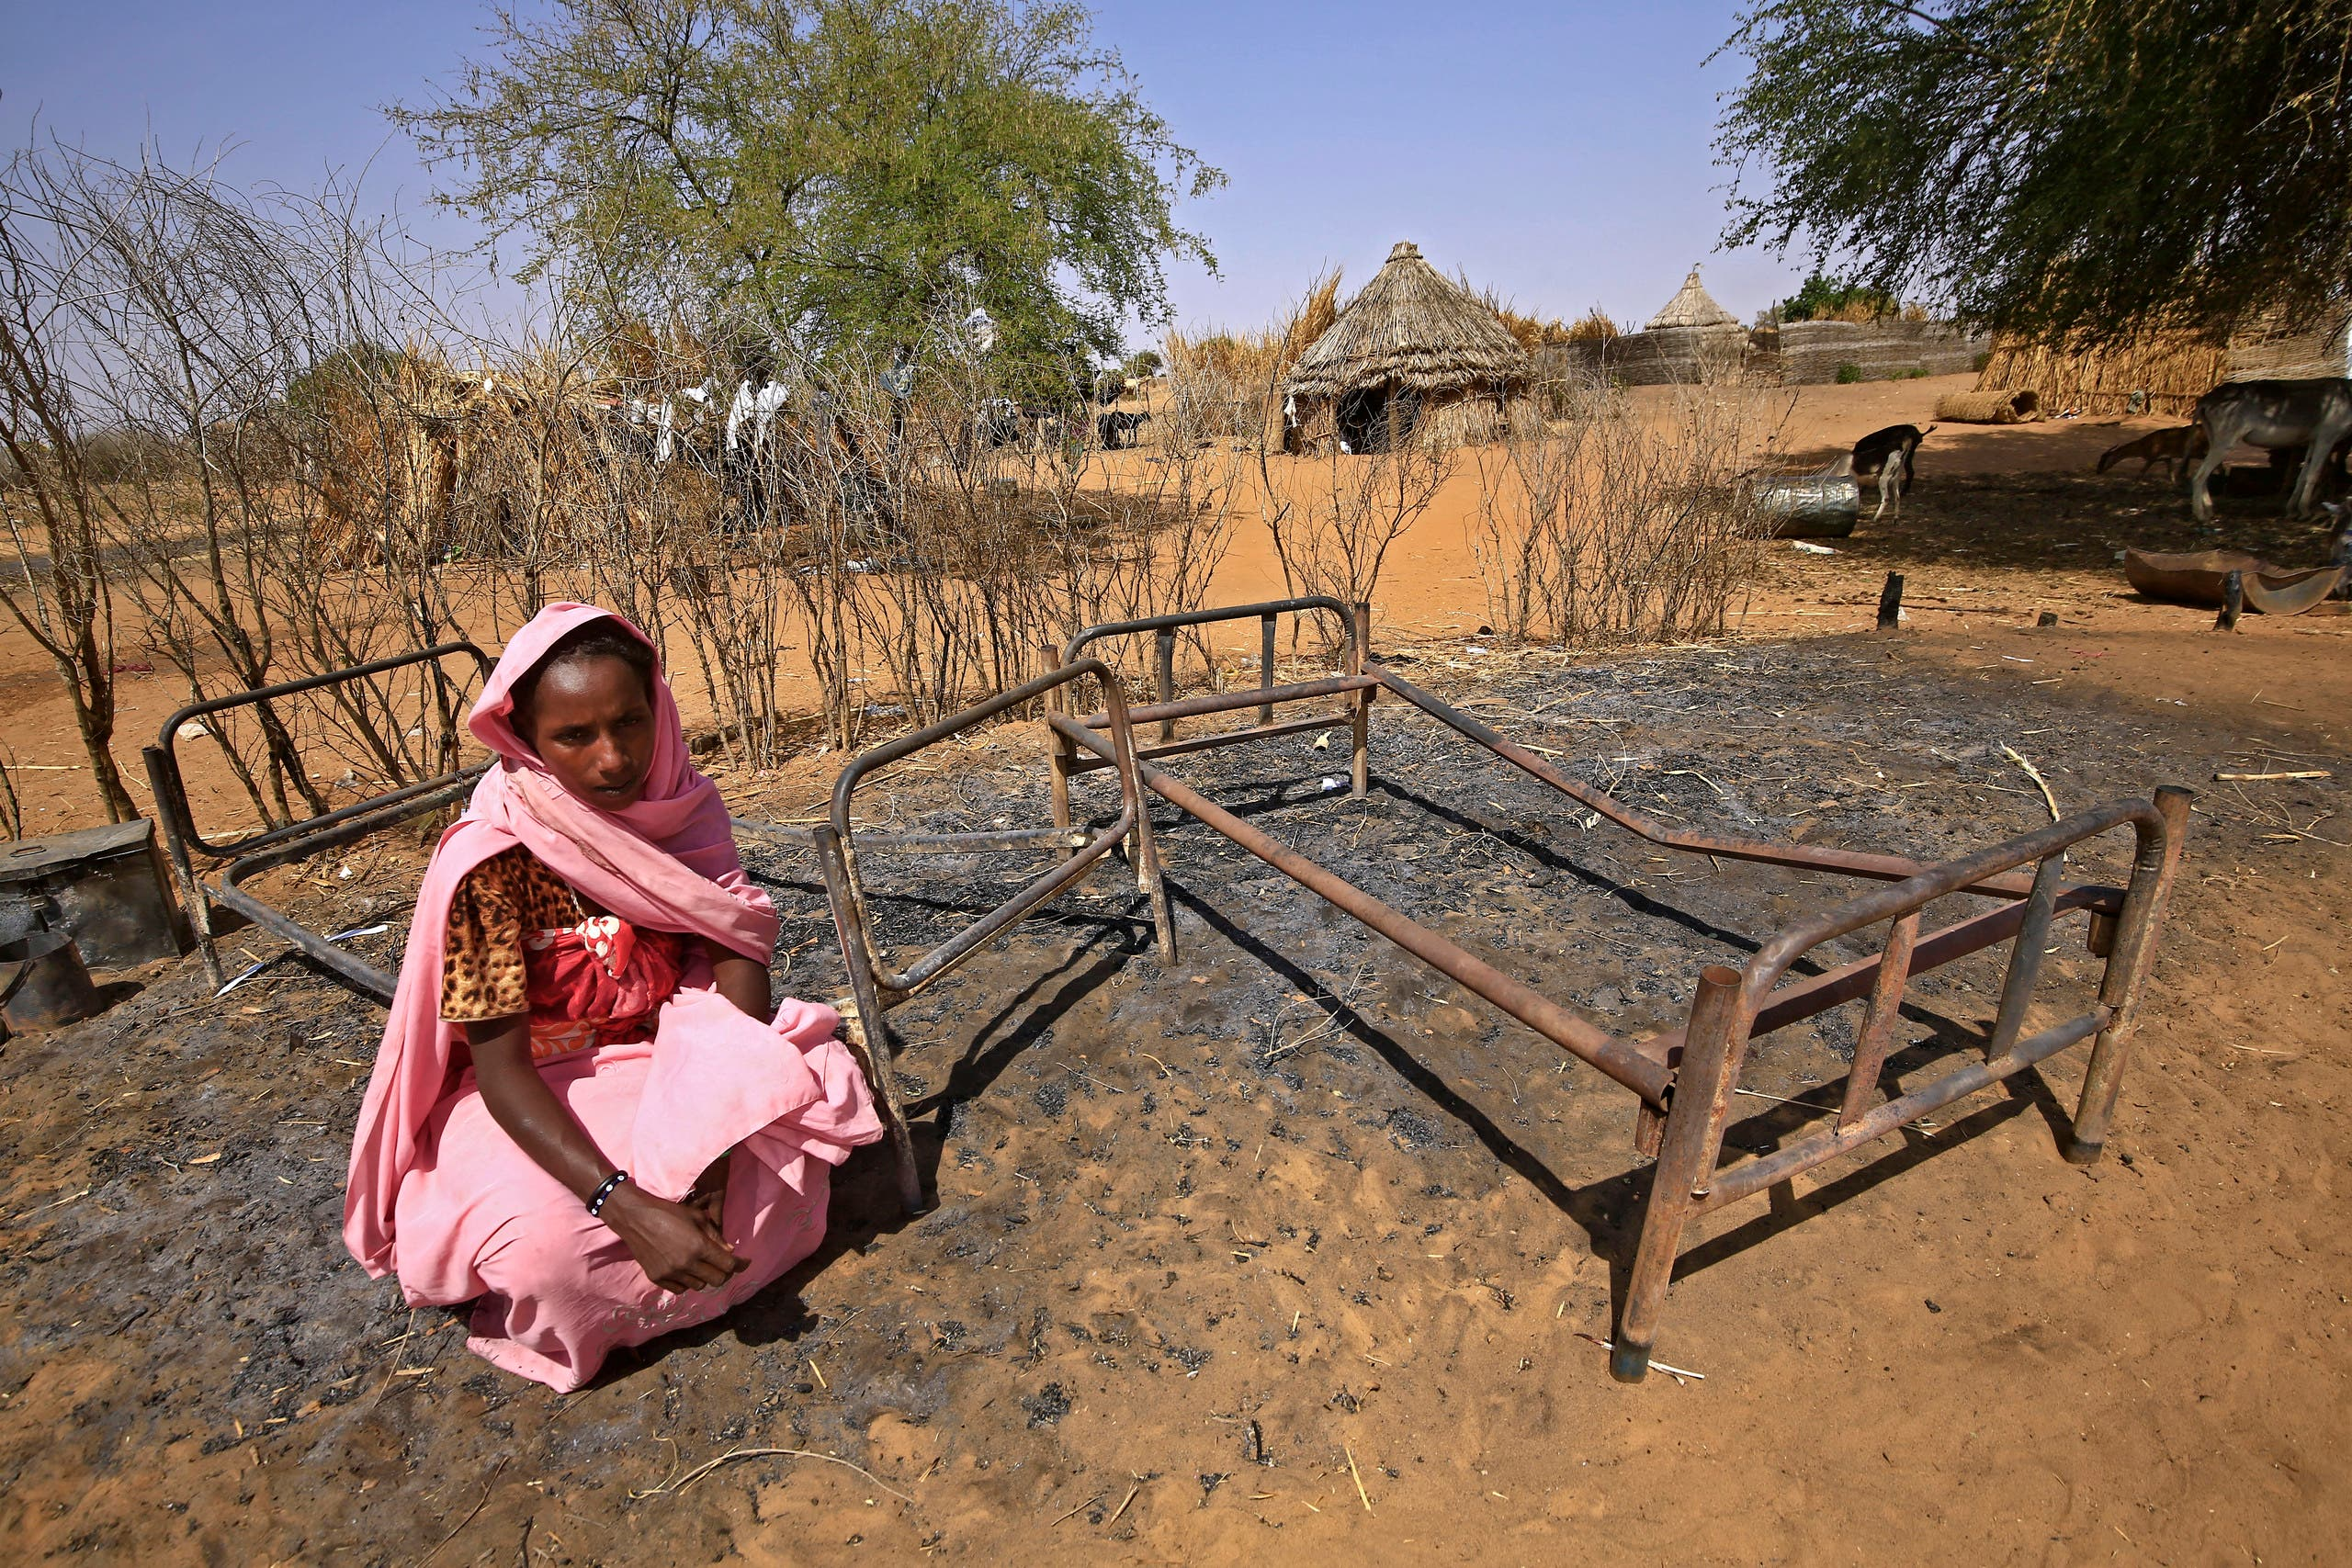 A Sudanese woman is pictured next to burnt beds following violence in the village of al-Twail Saadoun, 85 kilometres south of Nyala town, the capital of South Darfur, on February 2, 2021. (AFP)